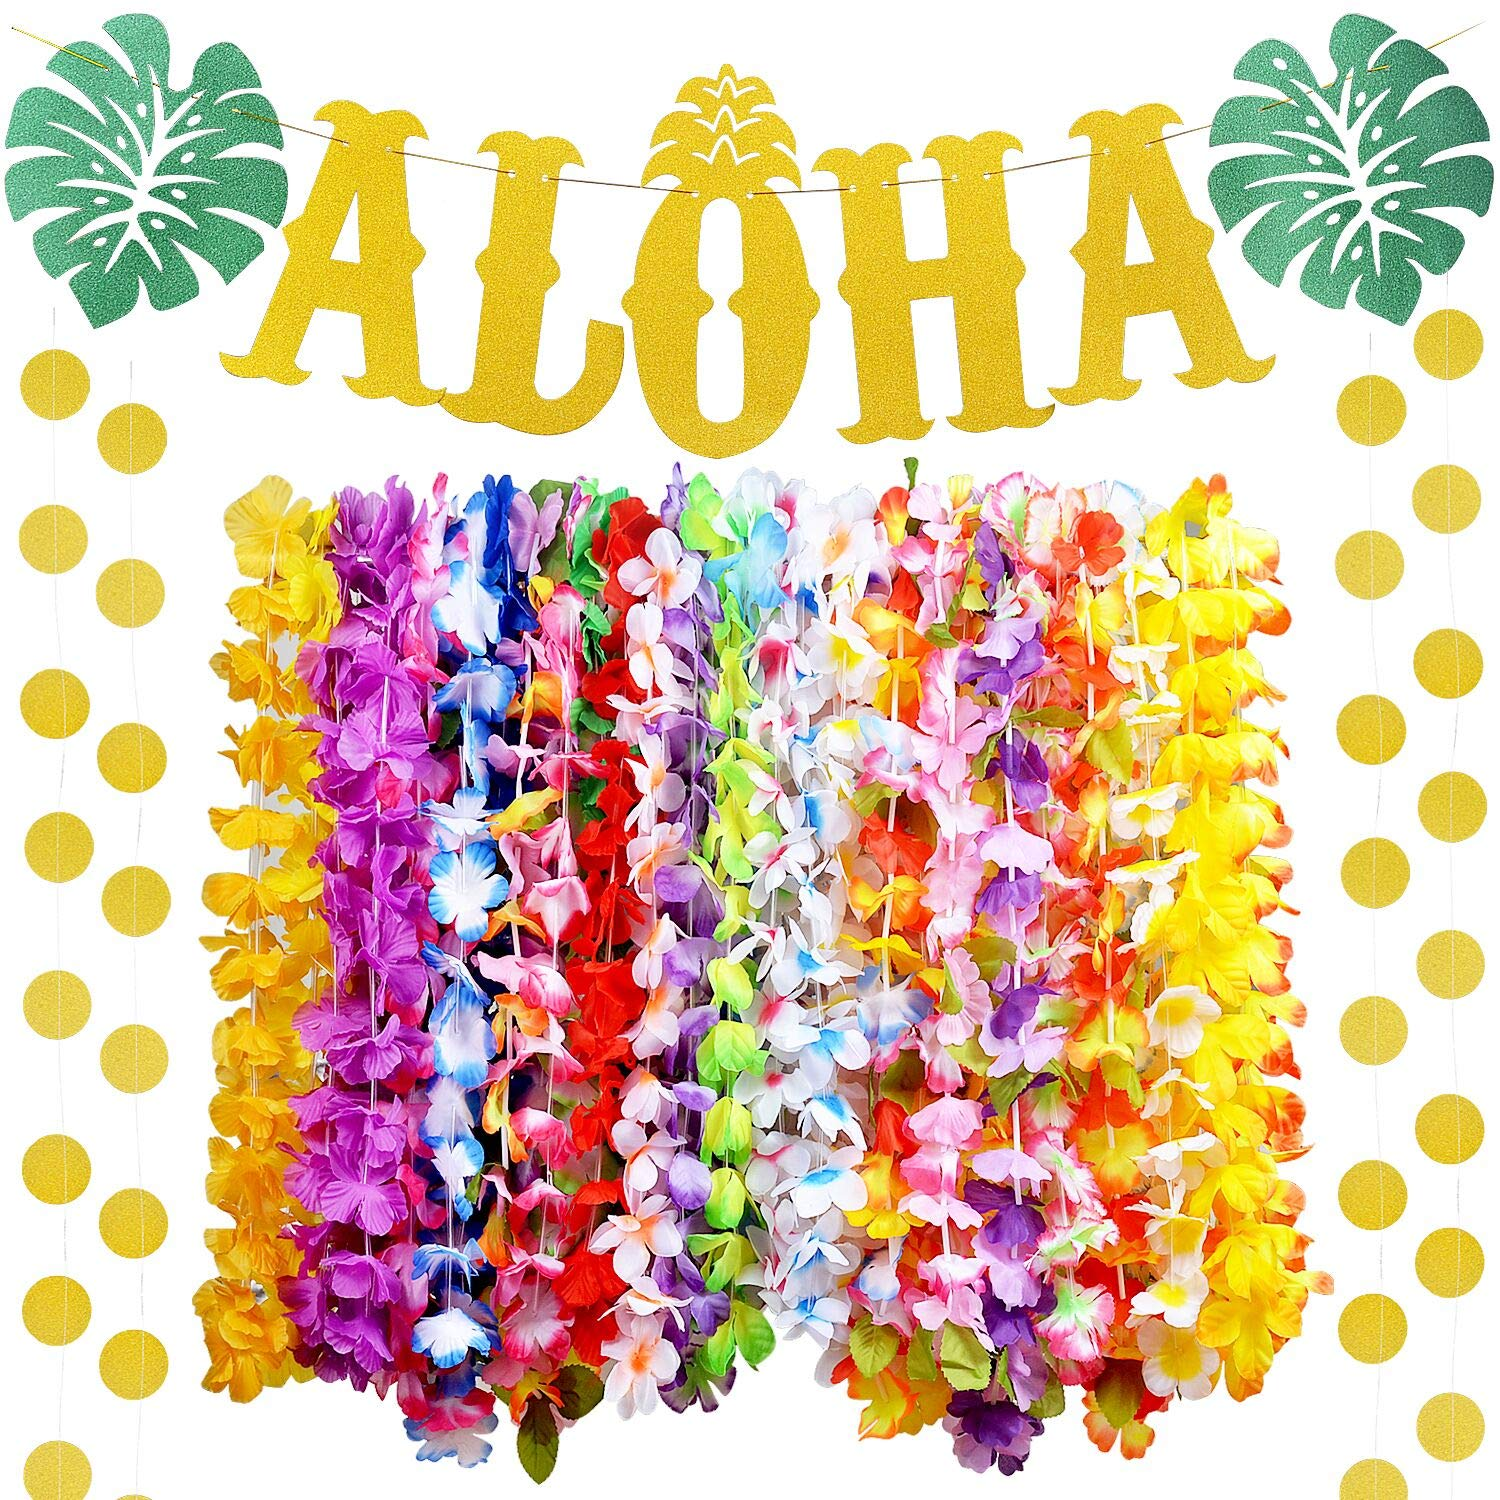 36 Counts Hawaiian Leis Necklace | 1Pc Glitter ALOHA Hawaiian Banner Hawaiian Flower Lei for Hawaiian Luau Party Supplies Favors Tiki Decorations Party Theme Event Decorations